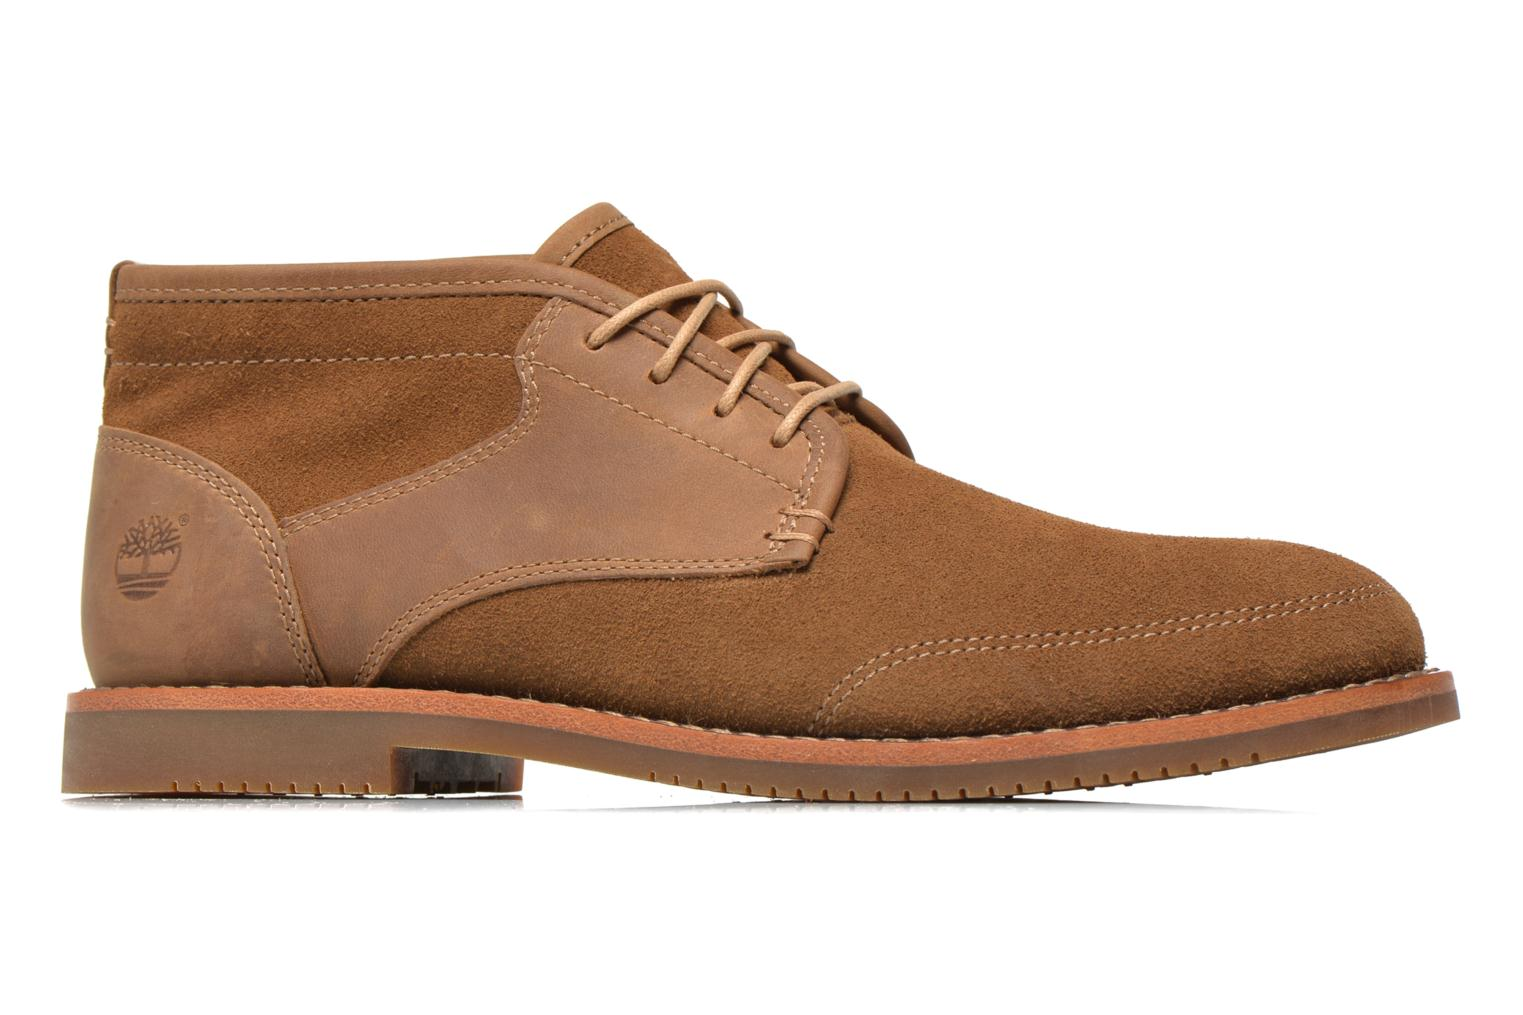 Chaussures à lacets Timberland Brooklyn Park Leather Ox High Marron vue derrière